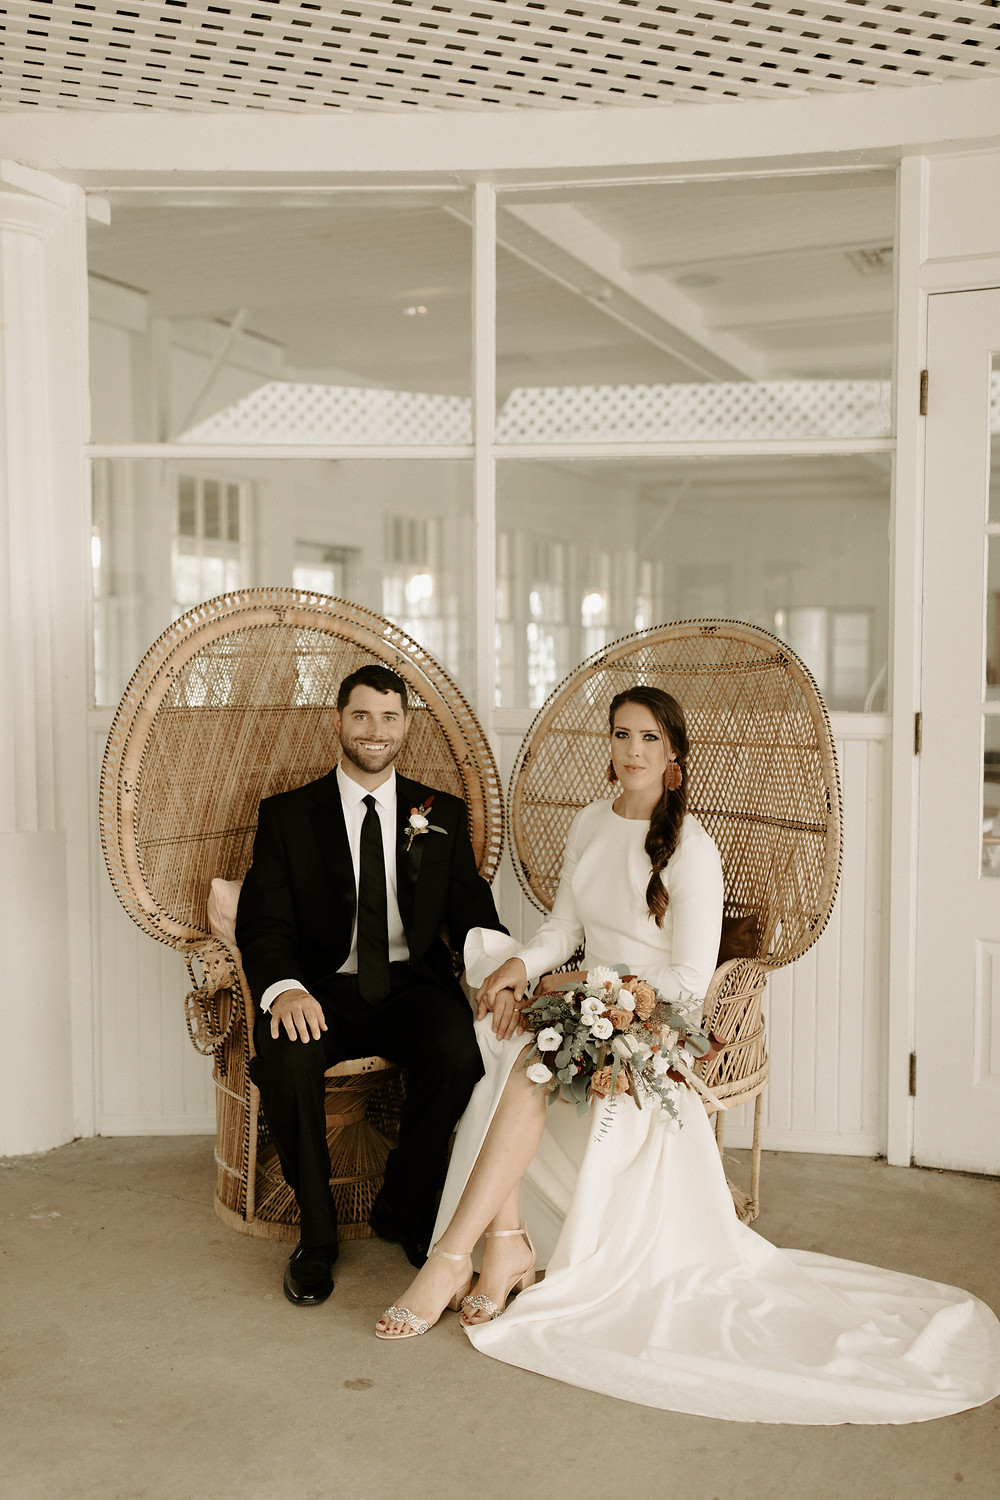 Peacock wedding chairs